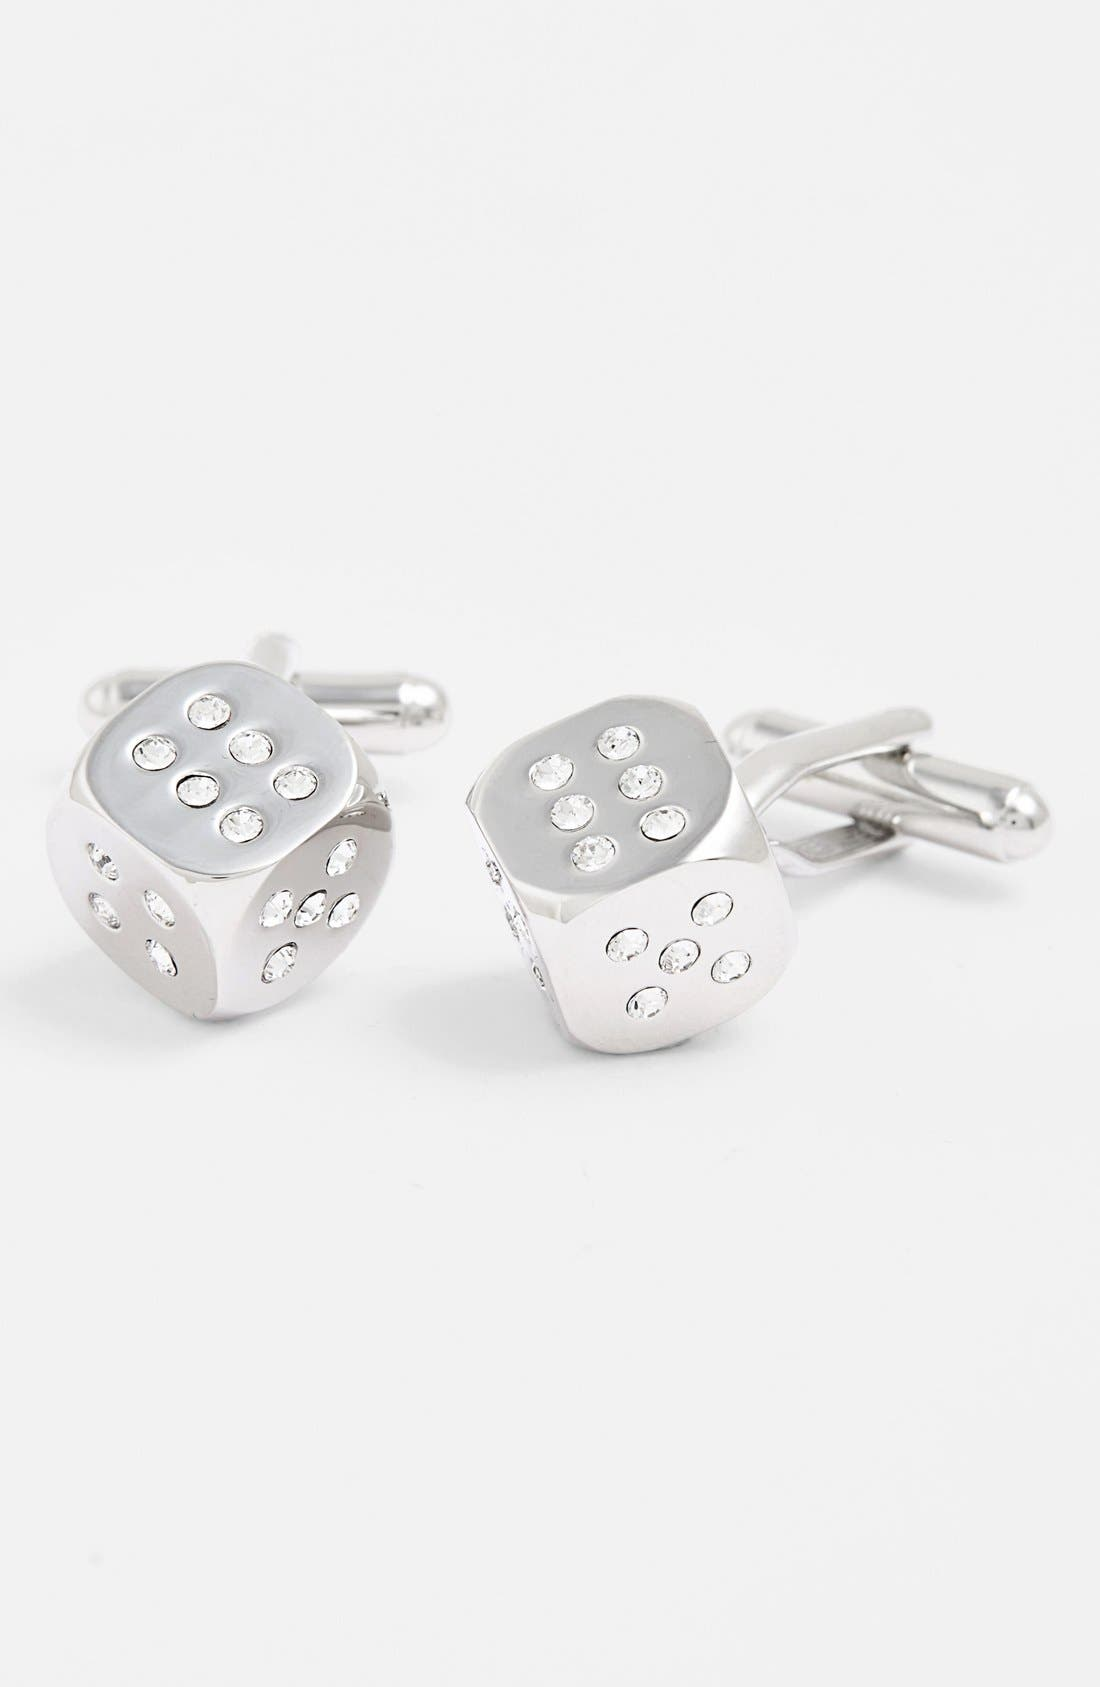 Alternate Image 1 Selected - LINK UP Dice Cuff Links